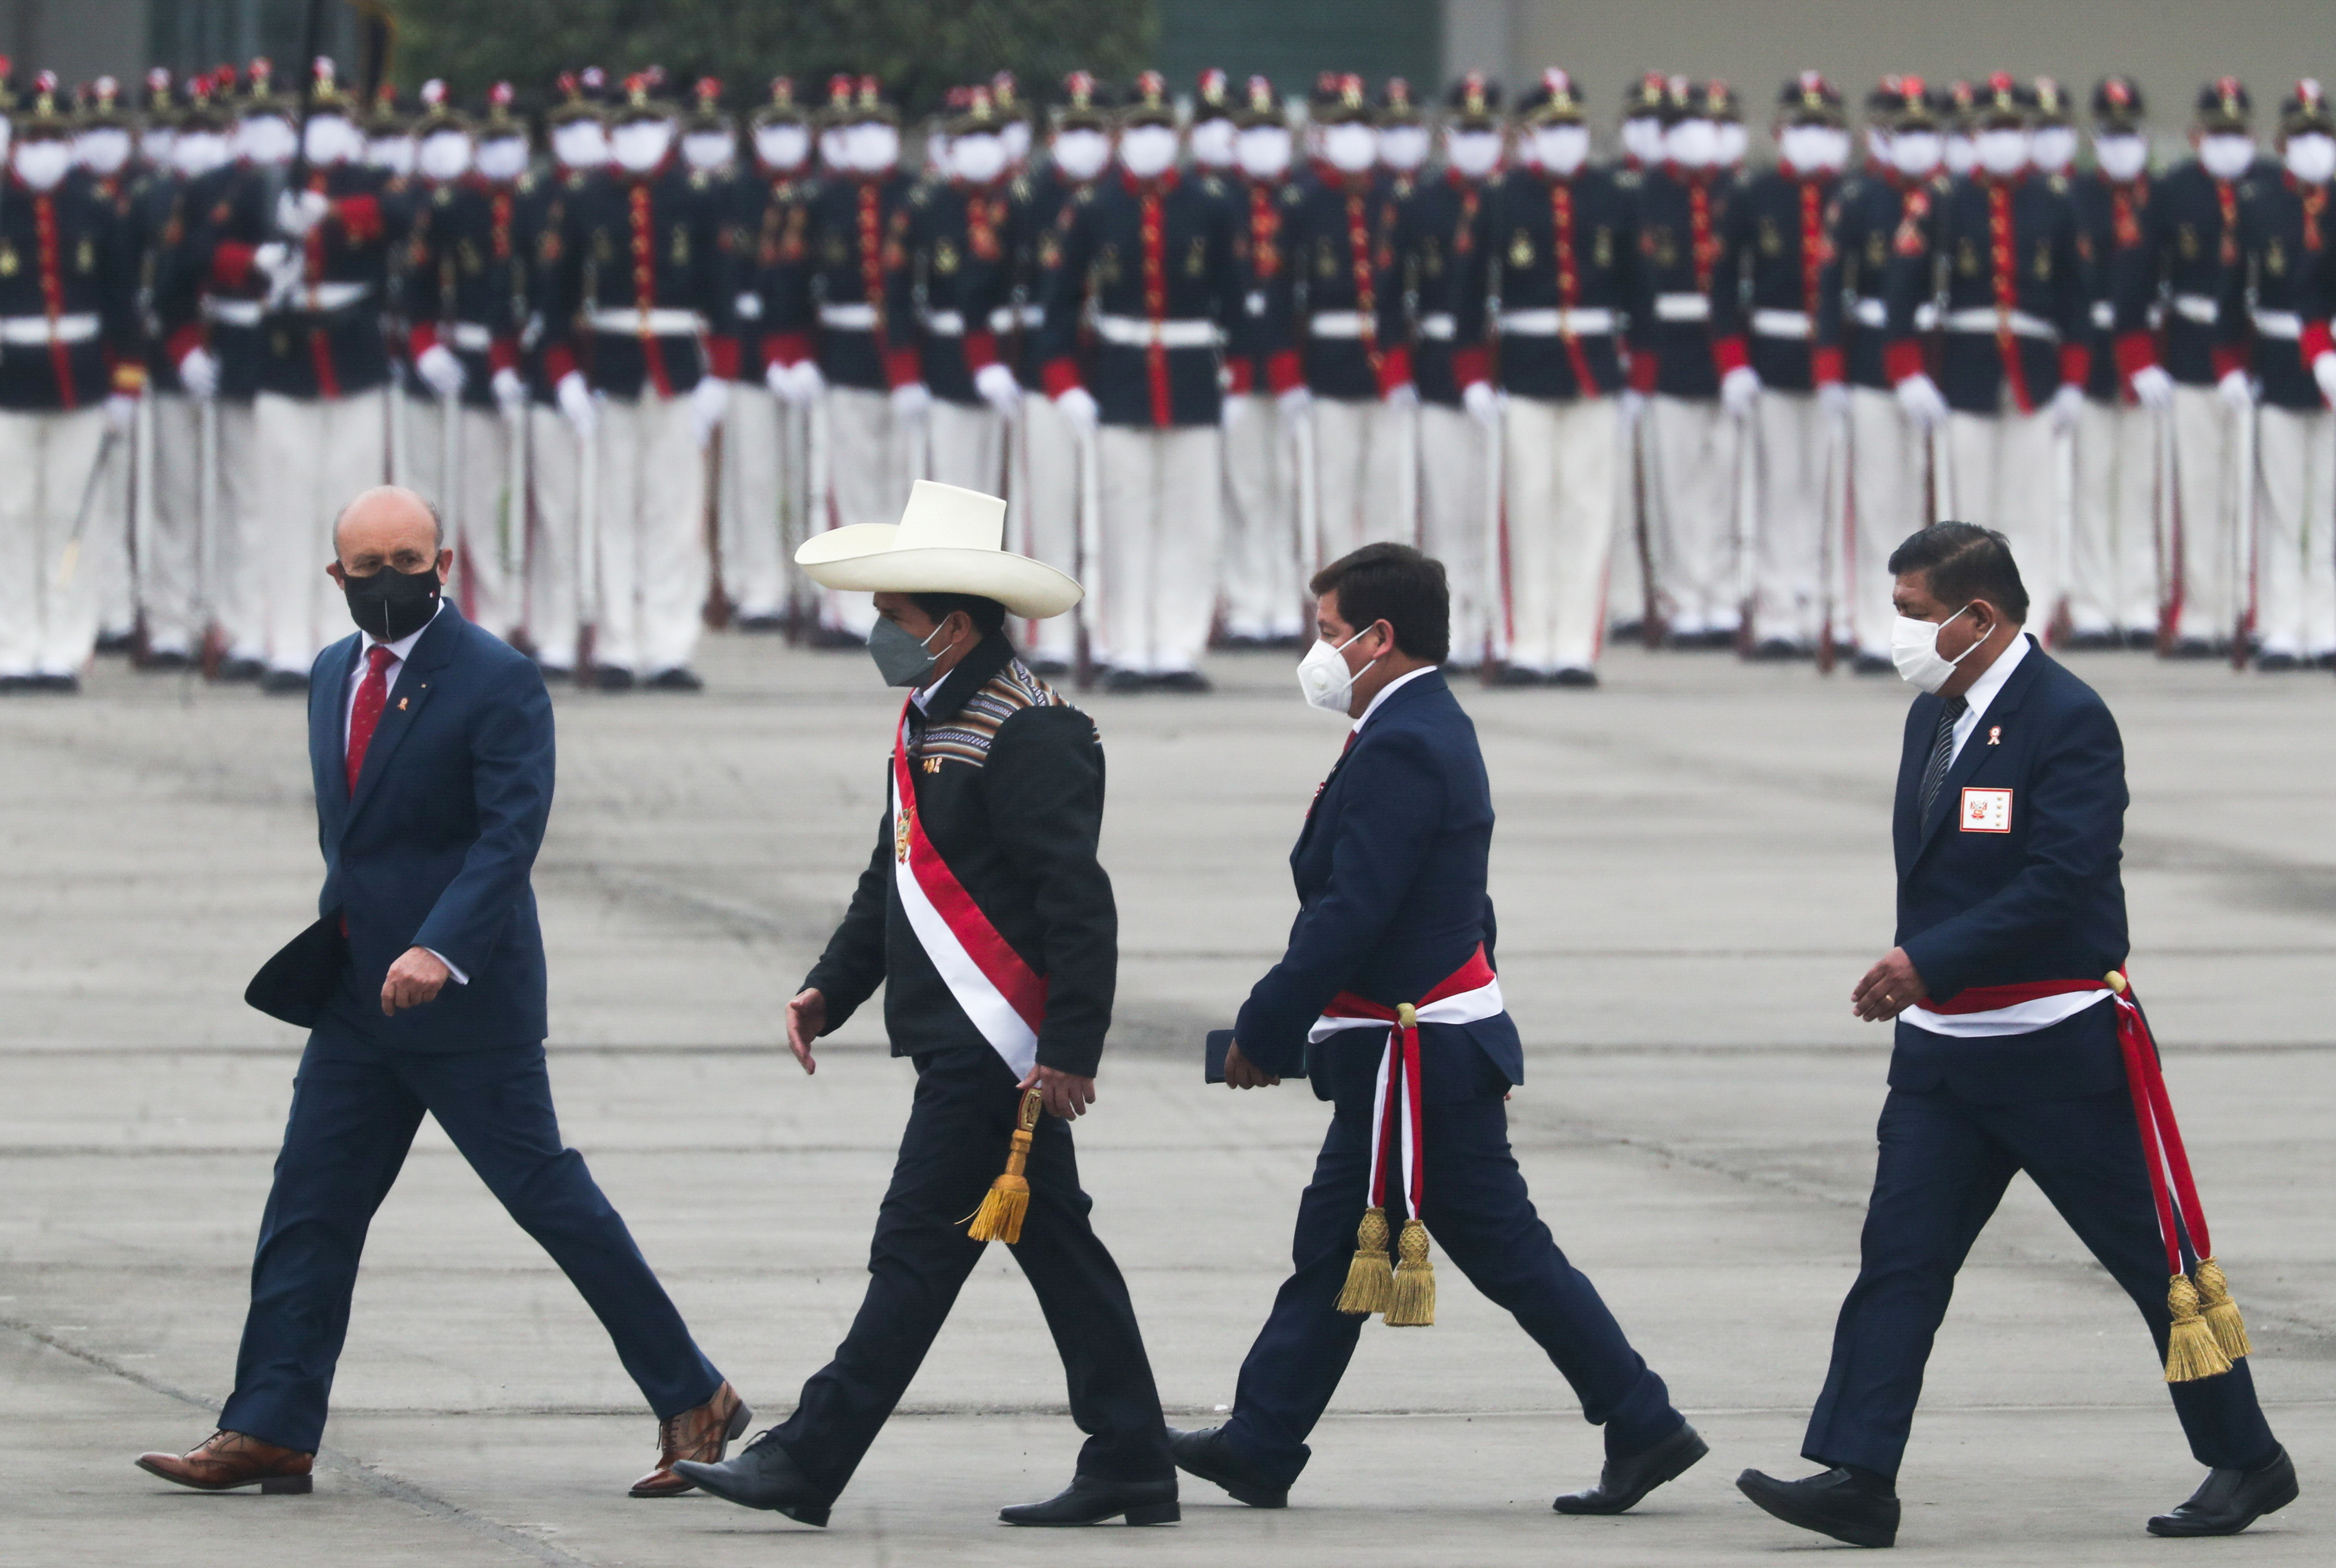 Peru's President Pedro Castillo attends a military parade with Prime Minister Guido Bellido Ugarte, and Defence Minister Walter Ayala, during Independence Day celebrations, in Lima, Peru, July 30, 2021. REUTERS/Sebastian Castaneda/File Photo